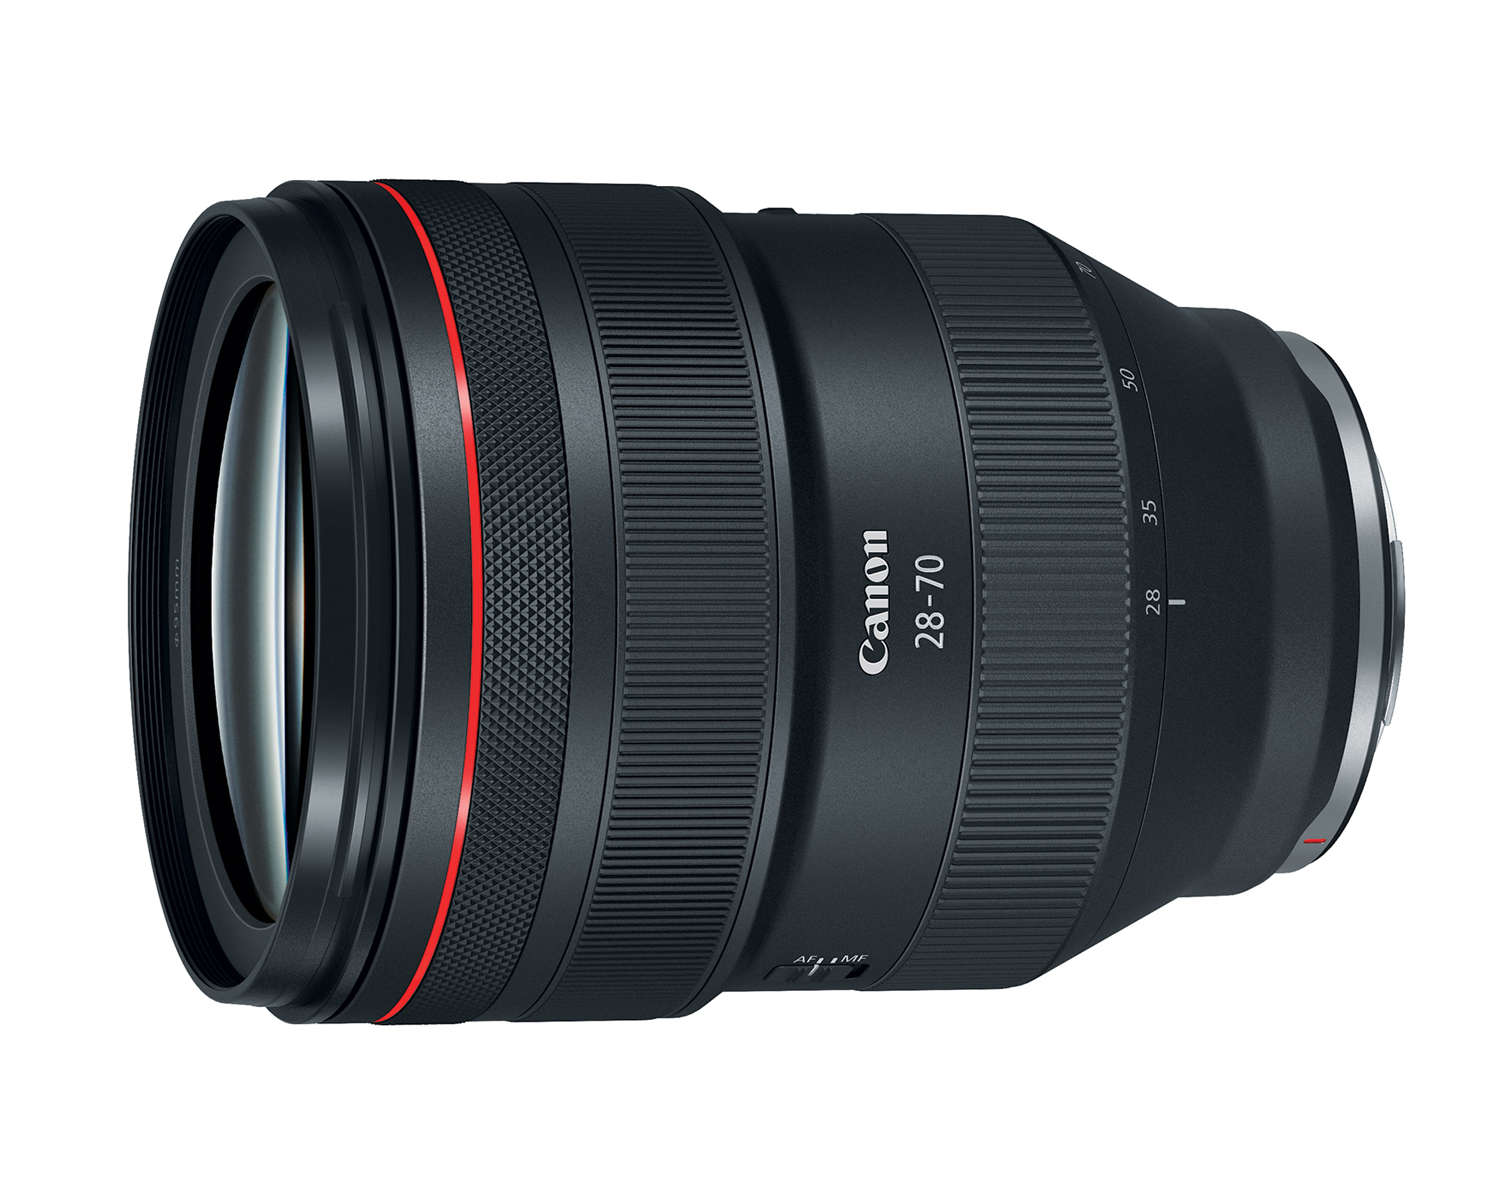 Canon RF 28-70mm F/2L Sample Photos (JPG & Raw To Download)